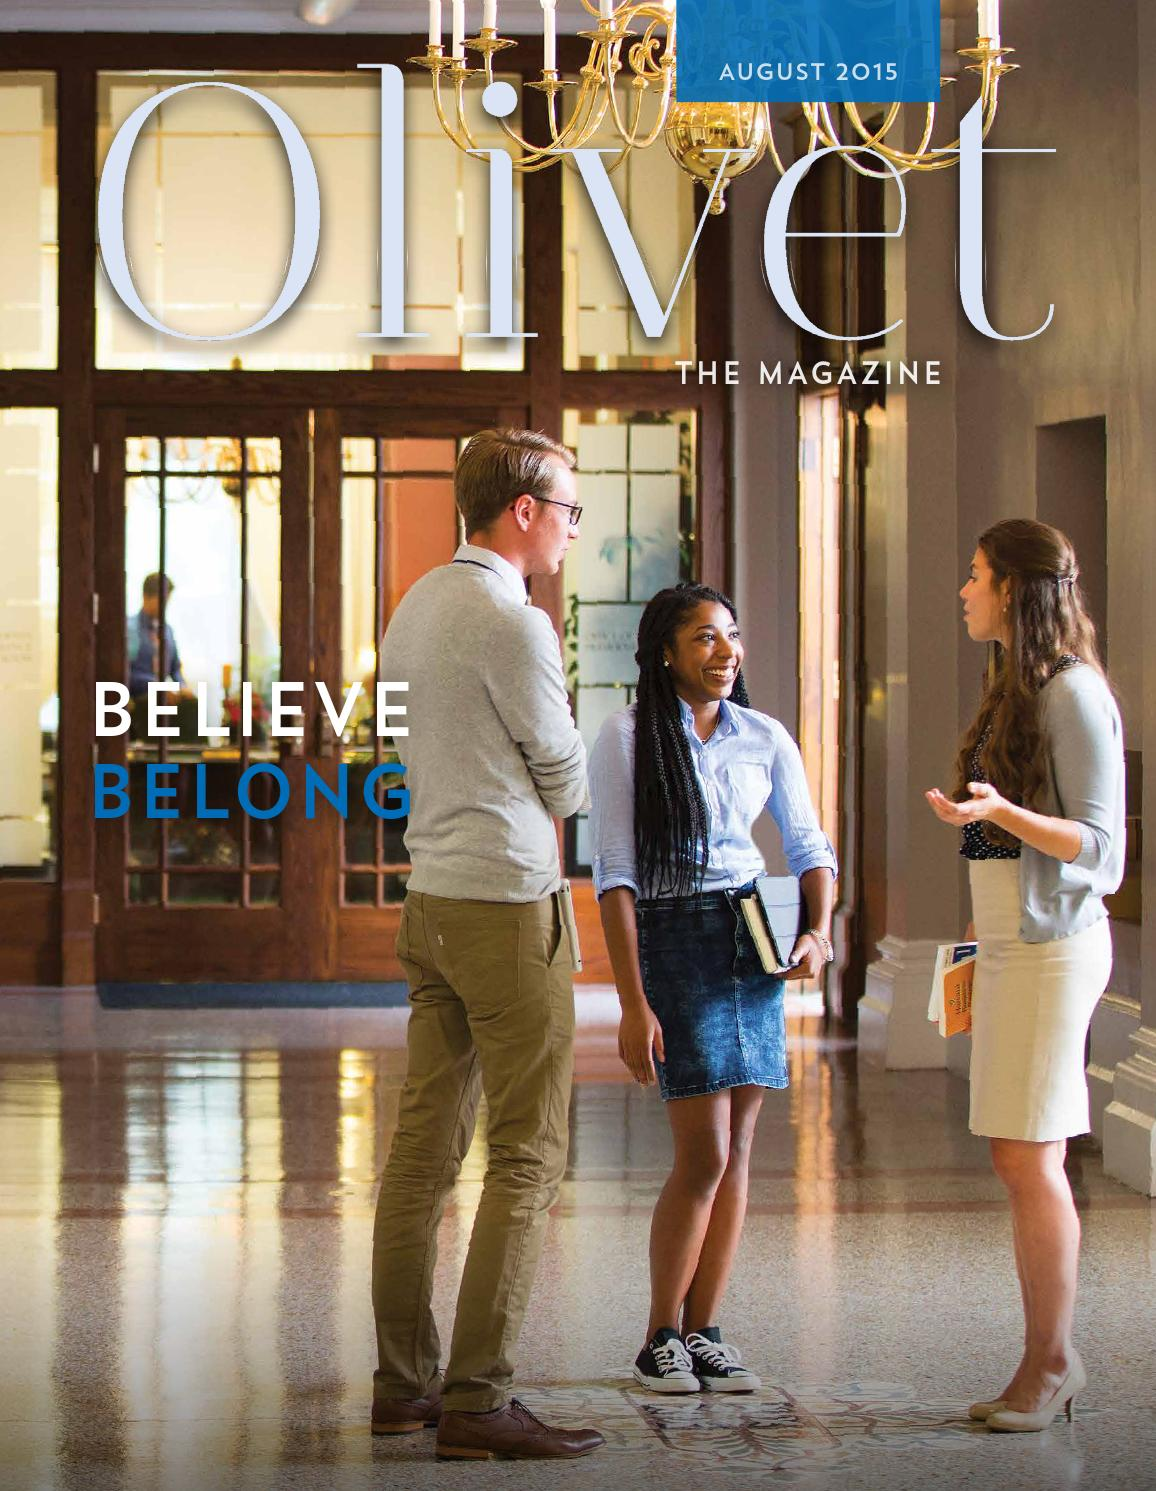 olivet the magazine believe and belong august 2015 by